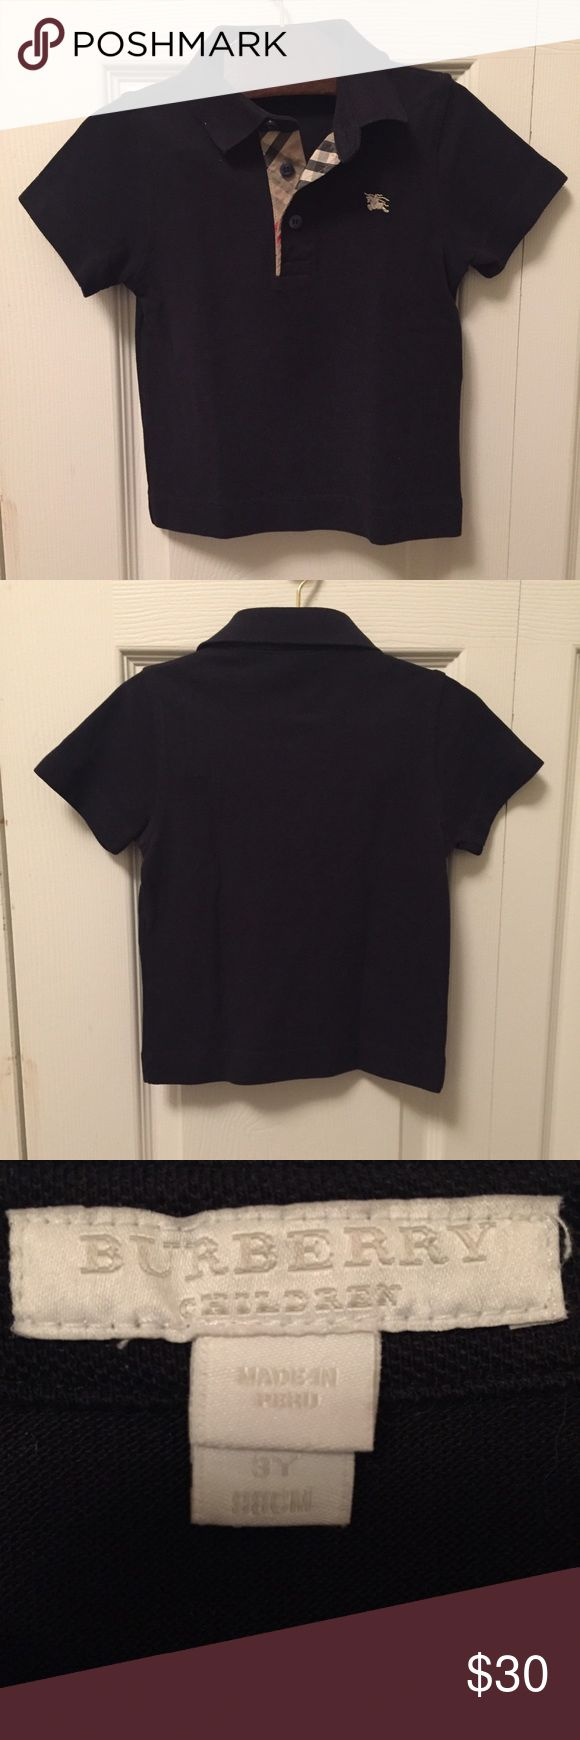 Burberry 3T black polo shirt Burberry toddler black polo shirt in 3T.  Excellent like new condition. Burberry Shirts & Tops Polos